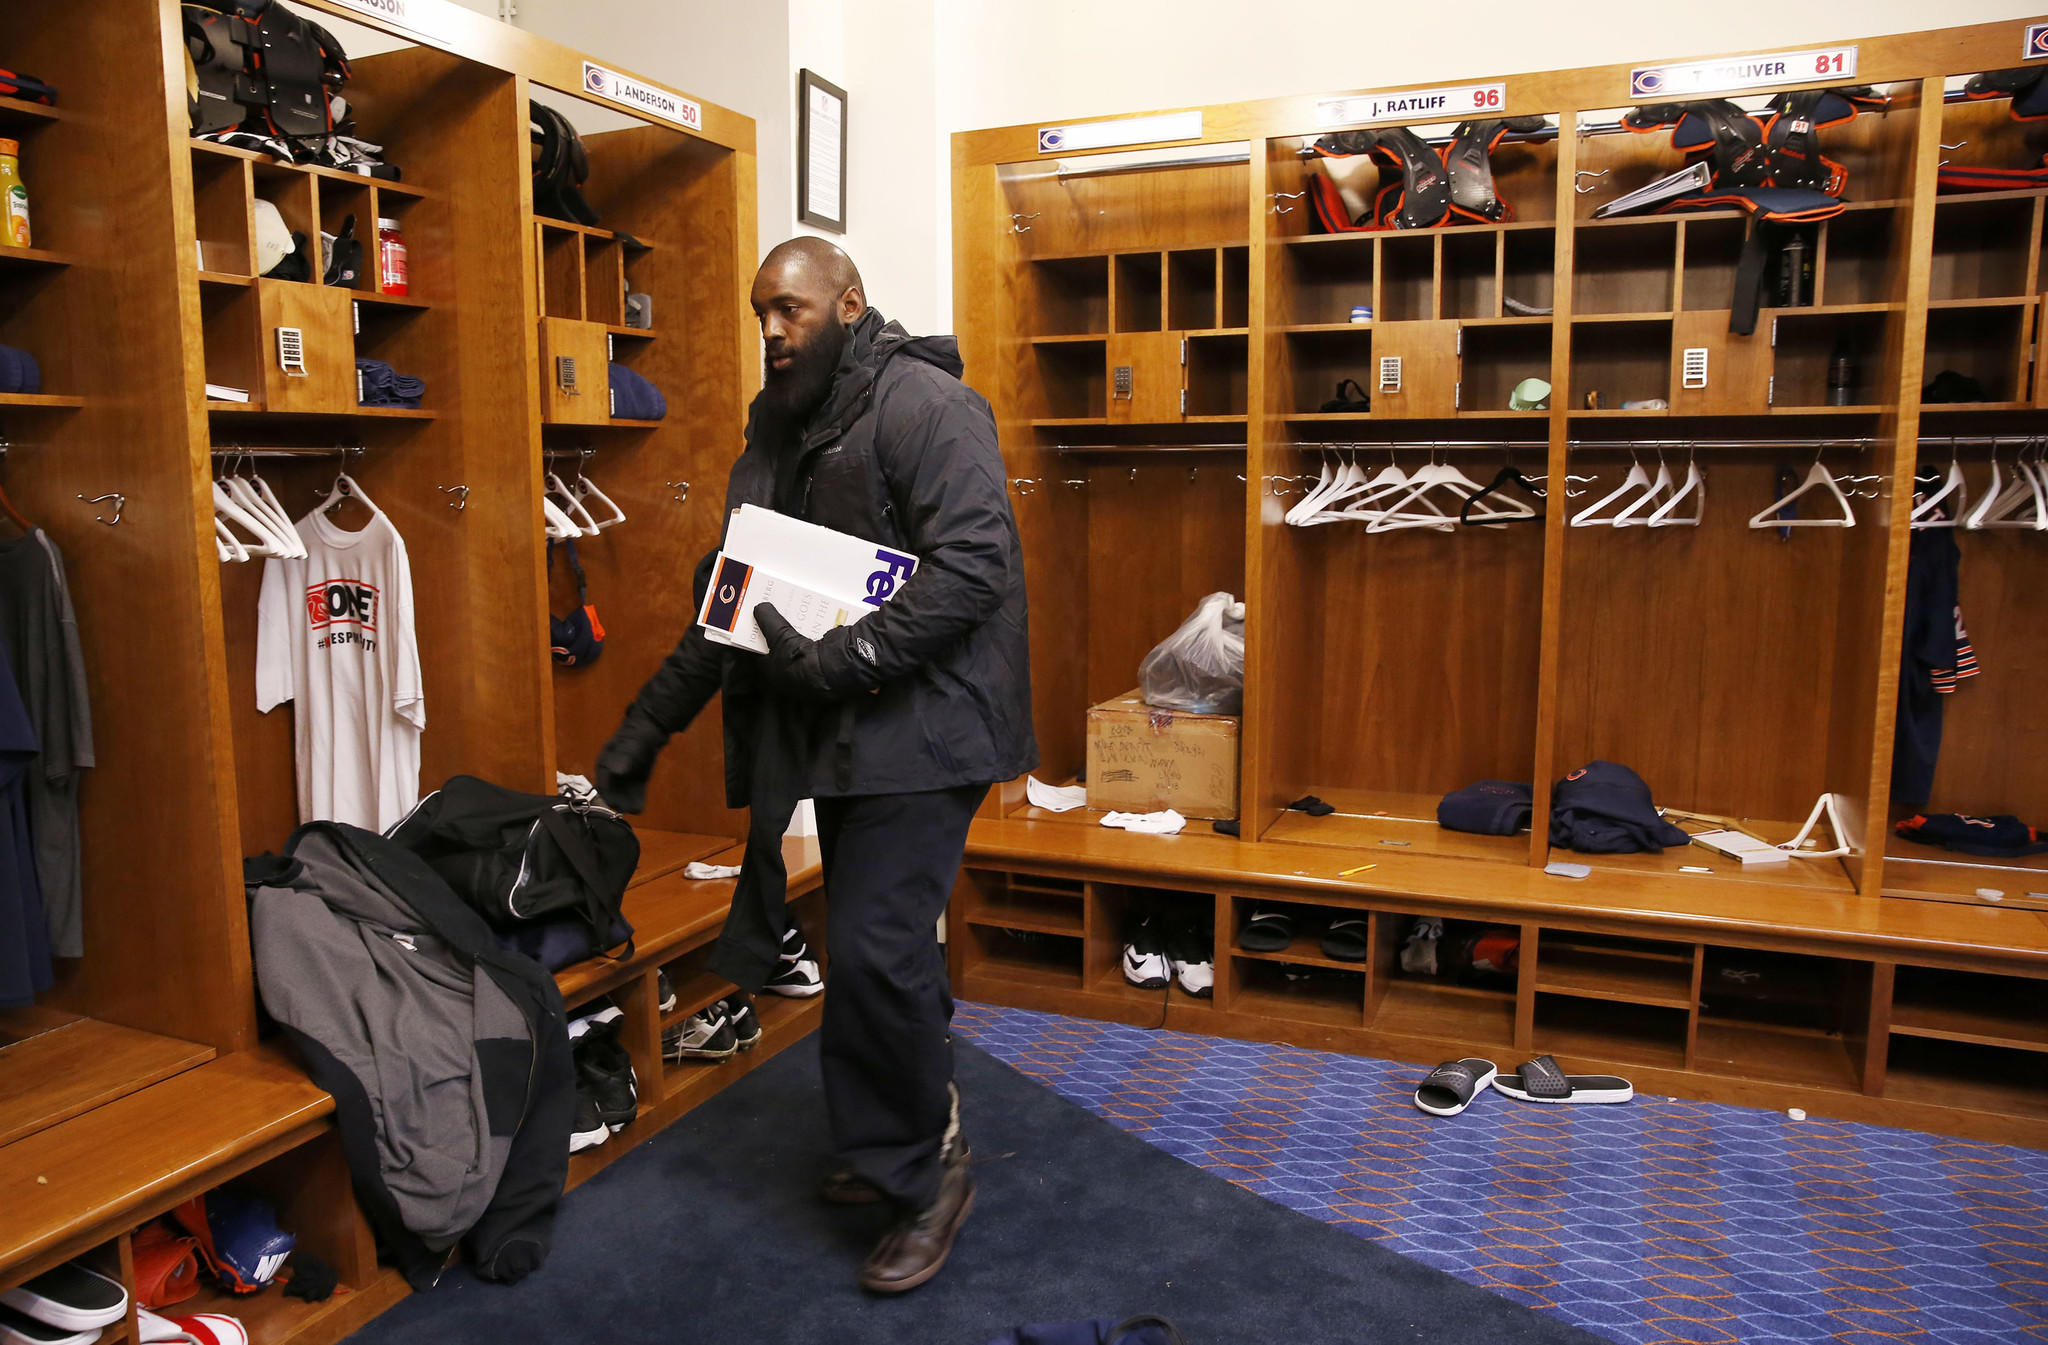 Chicago Bears nose tackle Jeremiah Ratliff (96) cleans out his locker at Halas Hall.